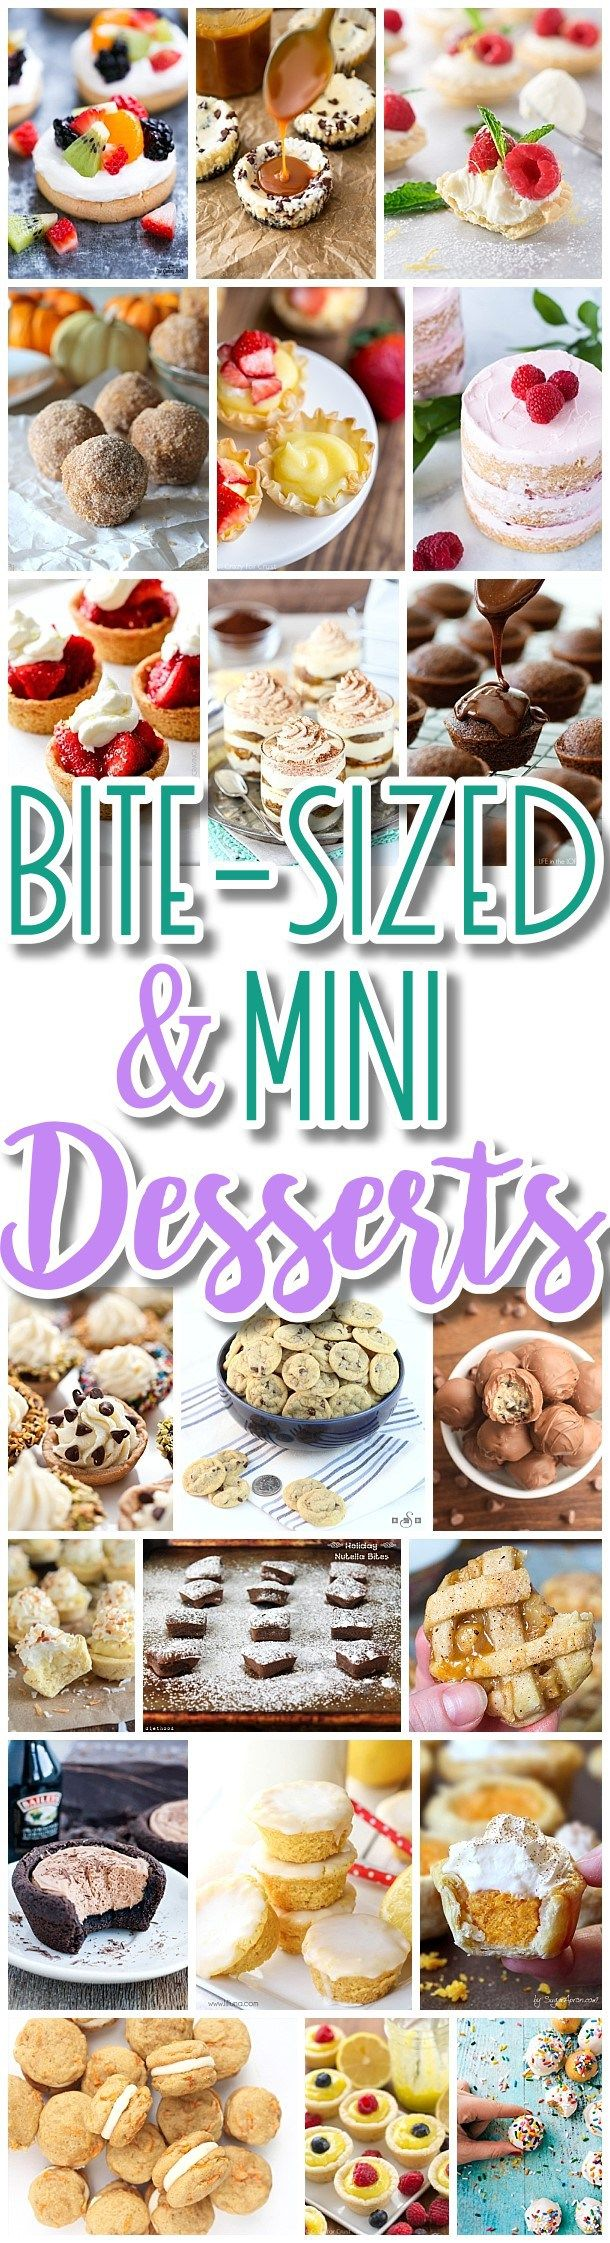 The BEST Bite Size Dessert Recipes - Mini, Individual, Yummy Treats, Perfectly Pretty for Valentine's Day, Your Baby and Bridal Showers, Birthday Party Dessert Tables - Holiday Celebrations! Dreaming in DIY